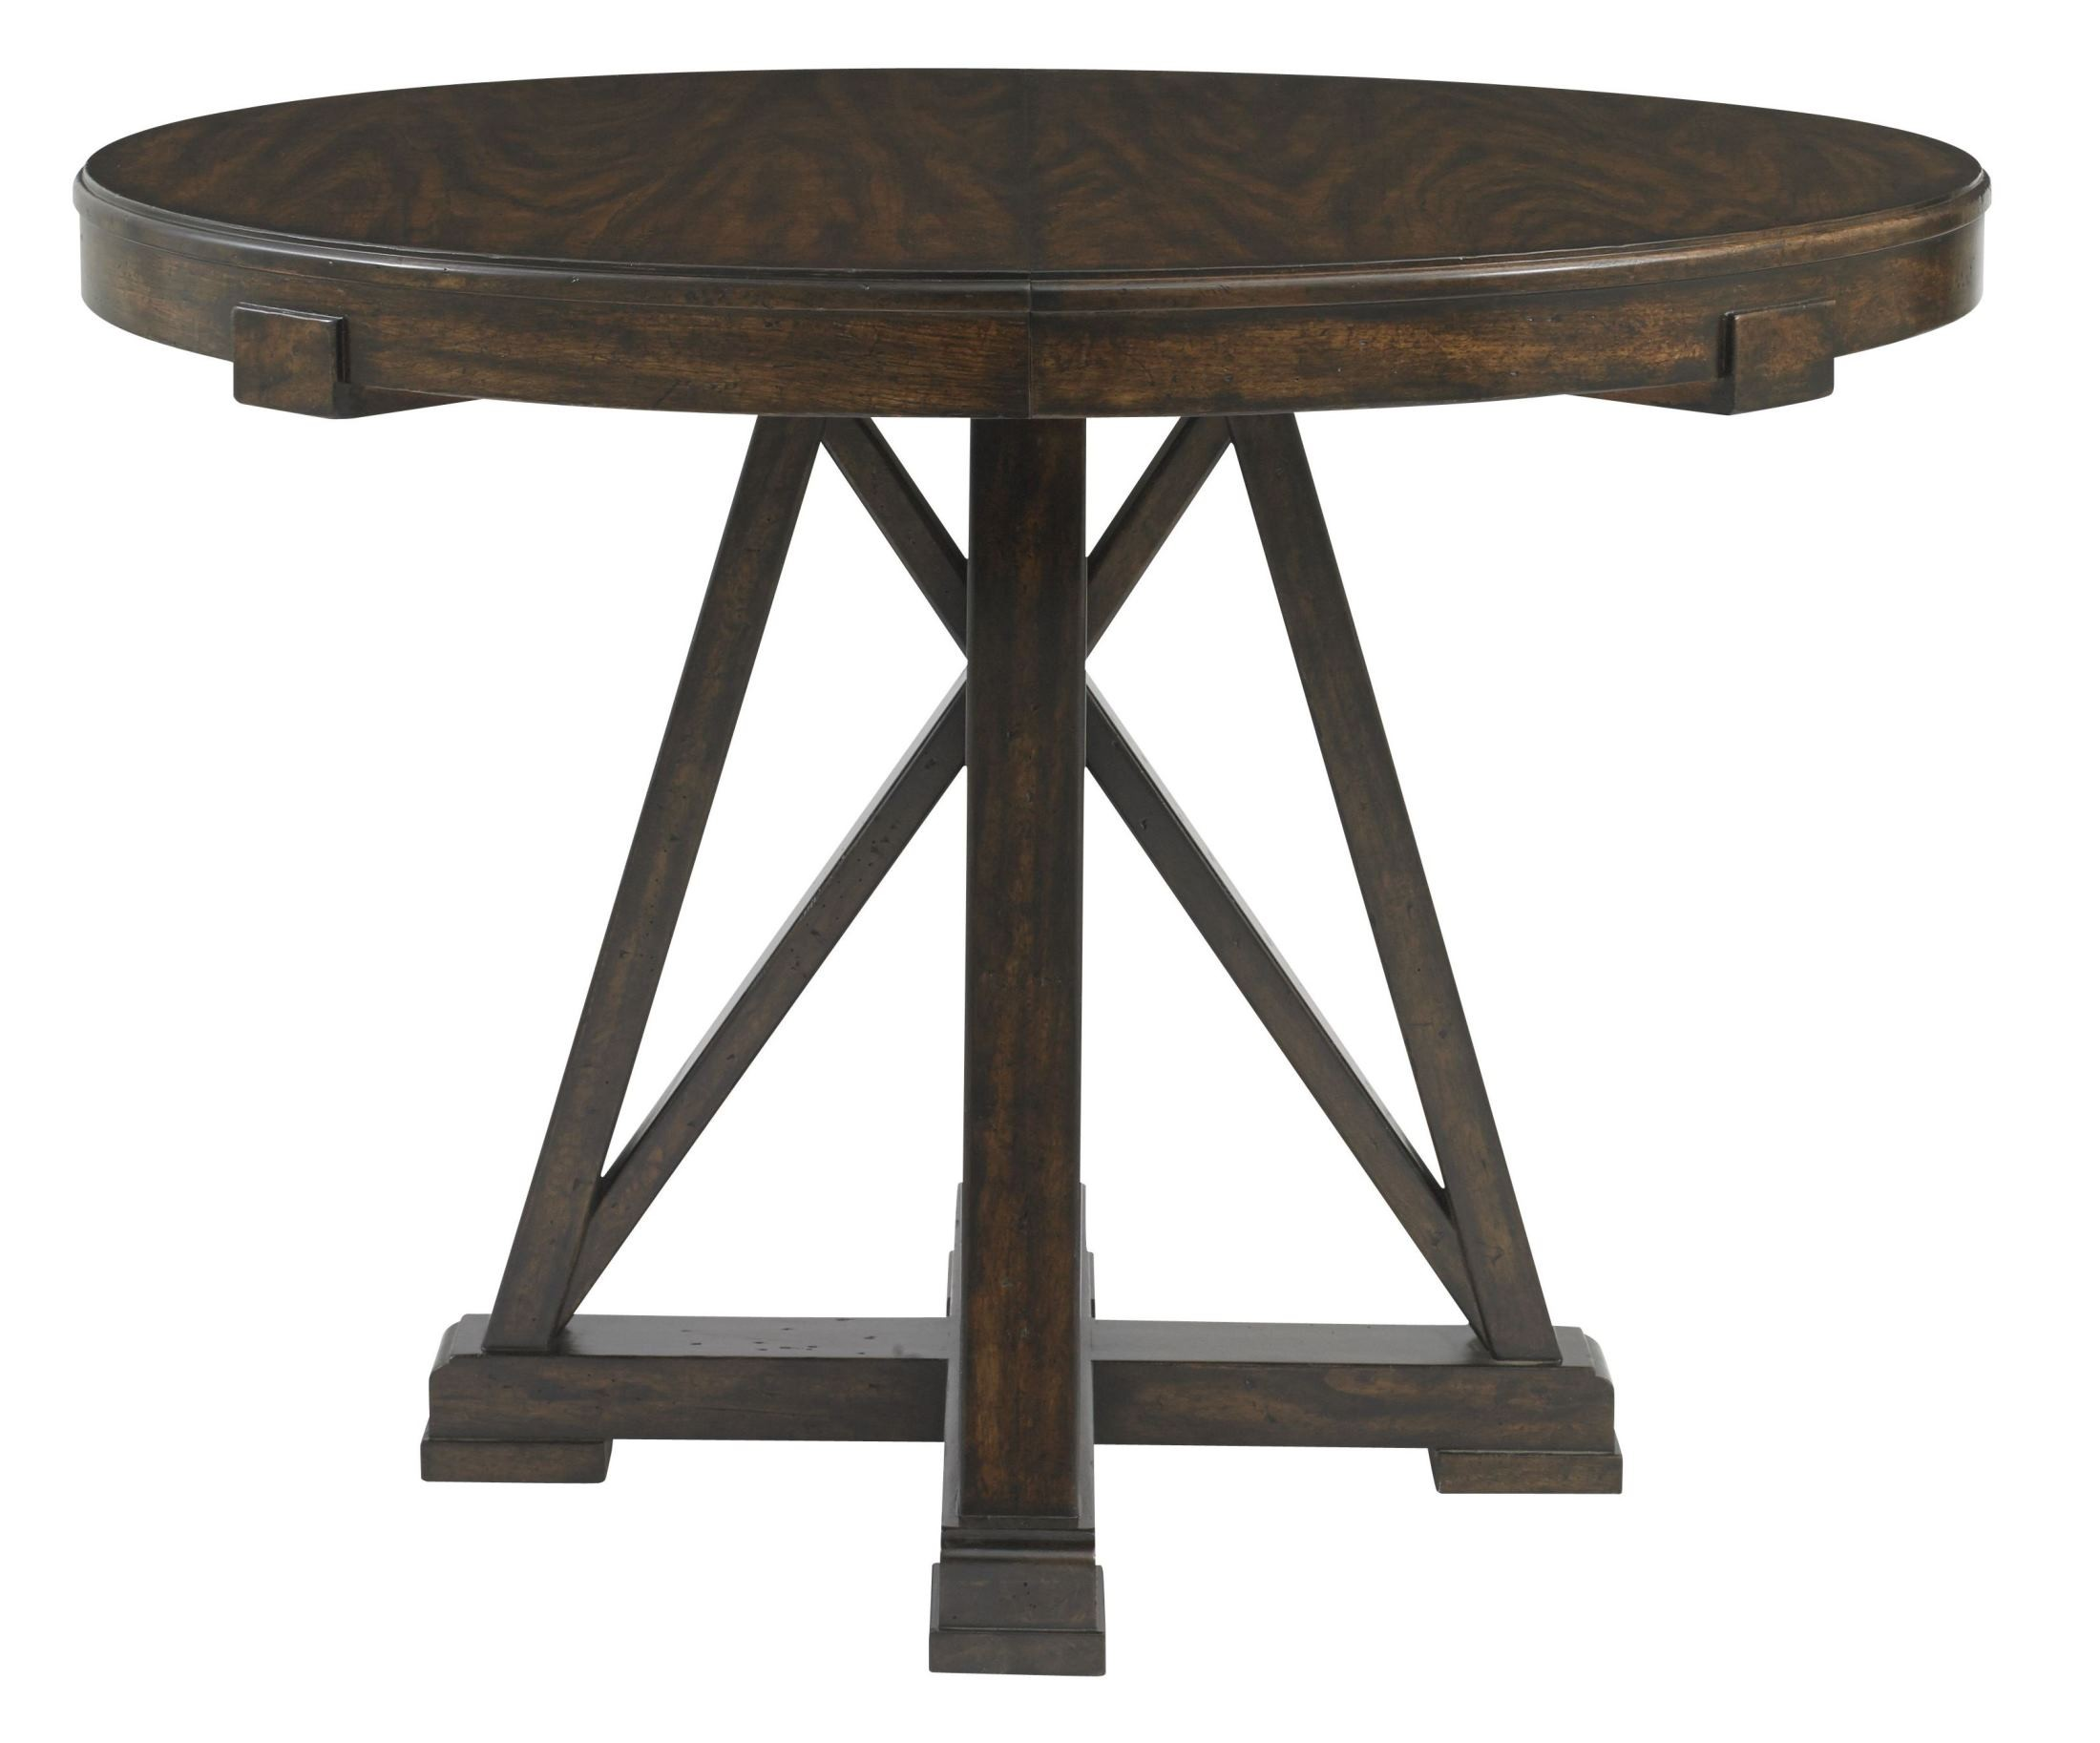 Newel Date Round Pedestal Extendable Dining Table 484 11 30 Stanley